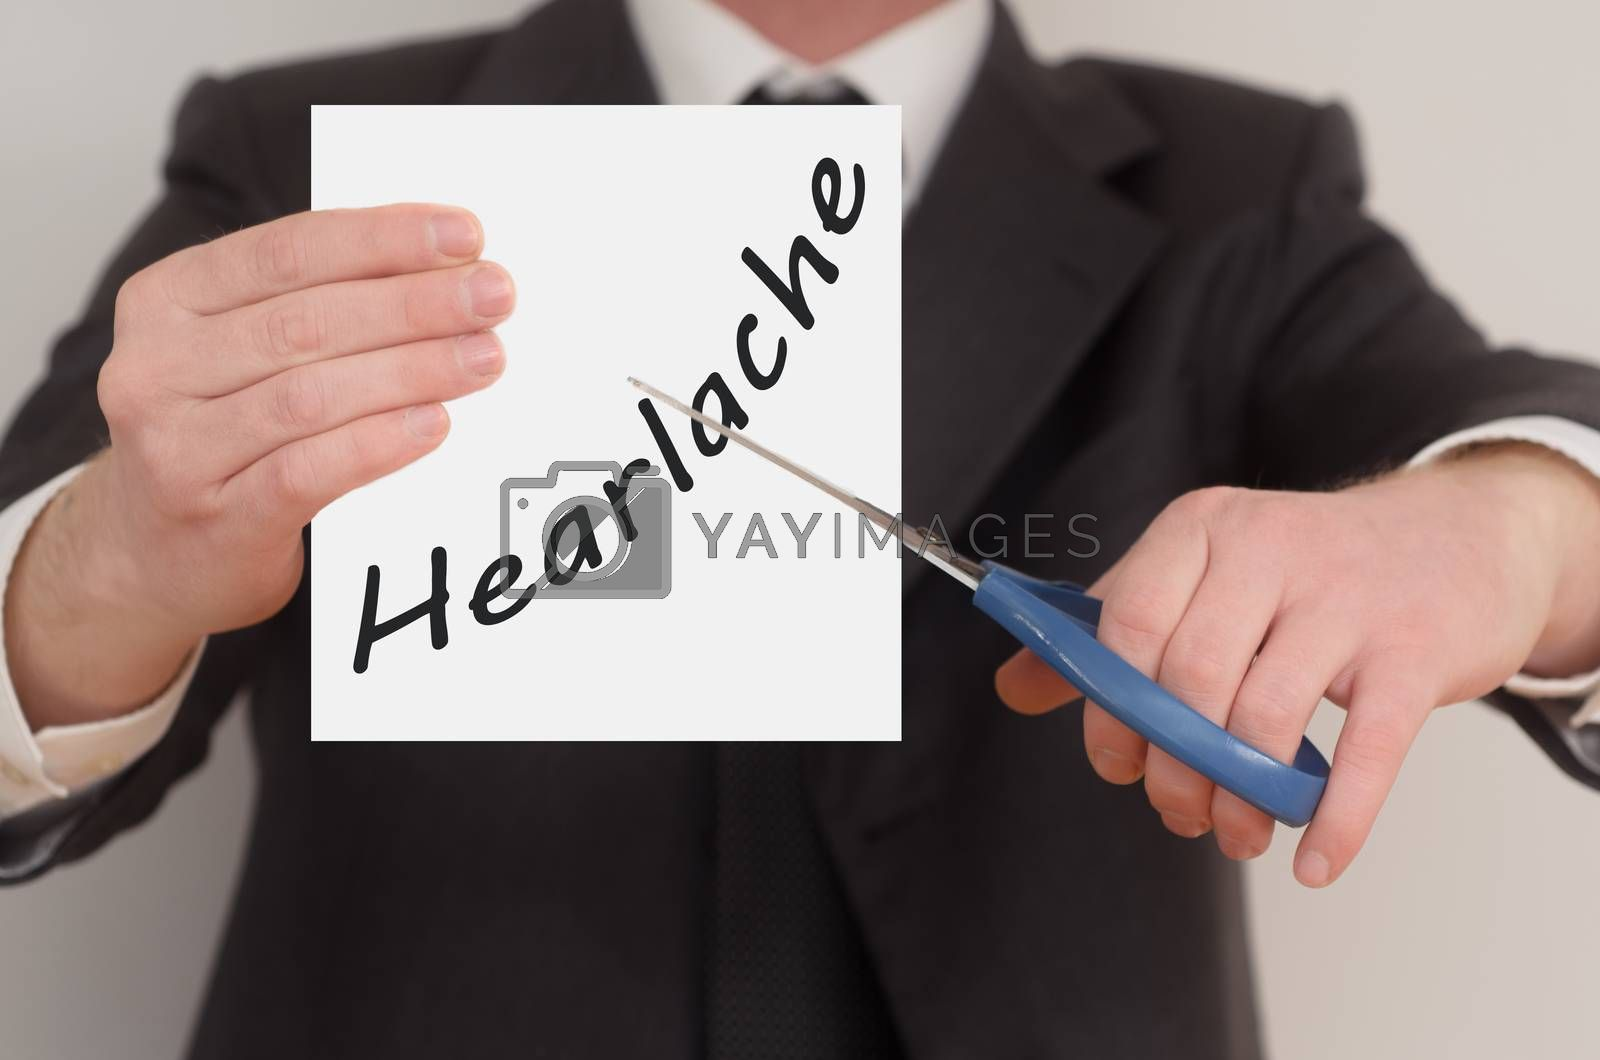 Hearlache, man in suit cutting text on paper with scissors